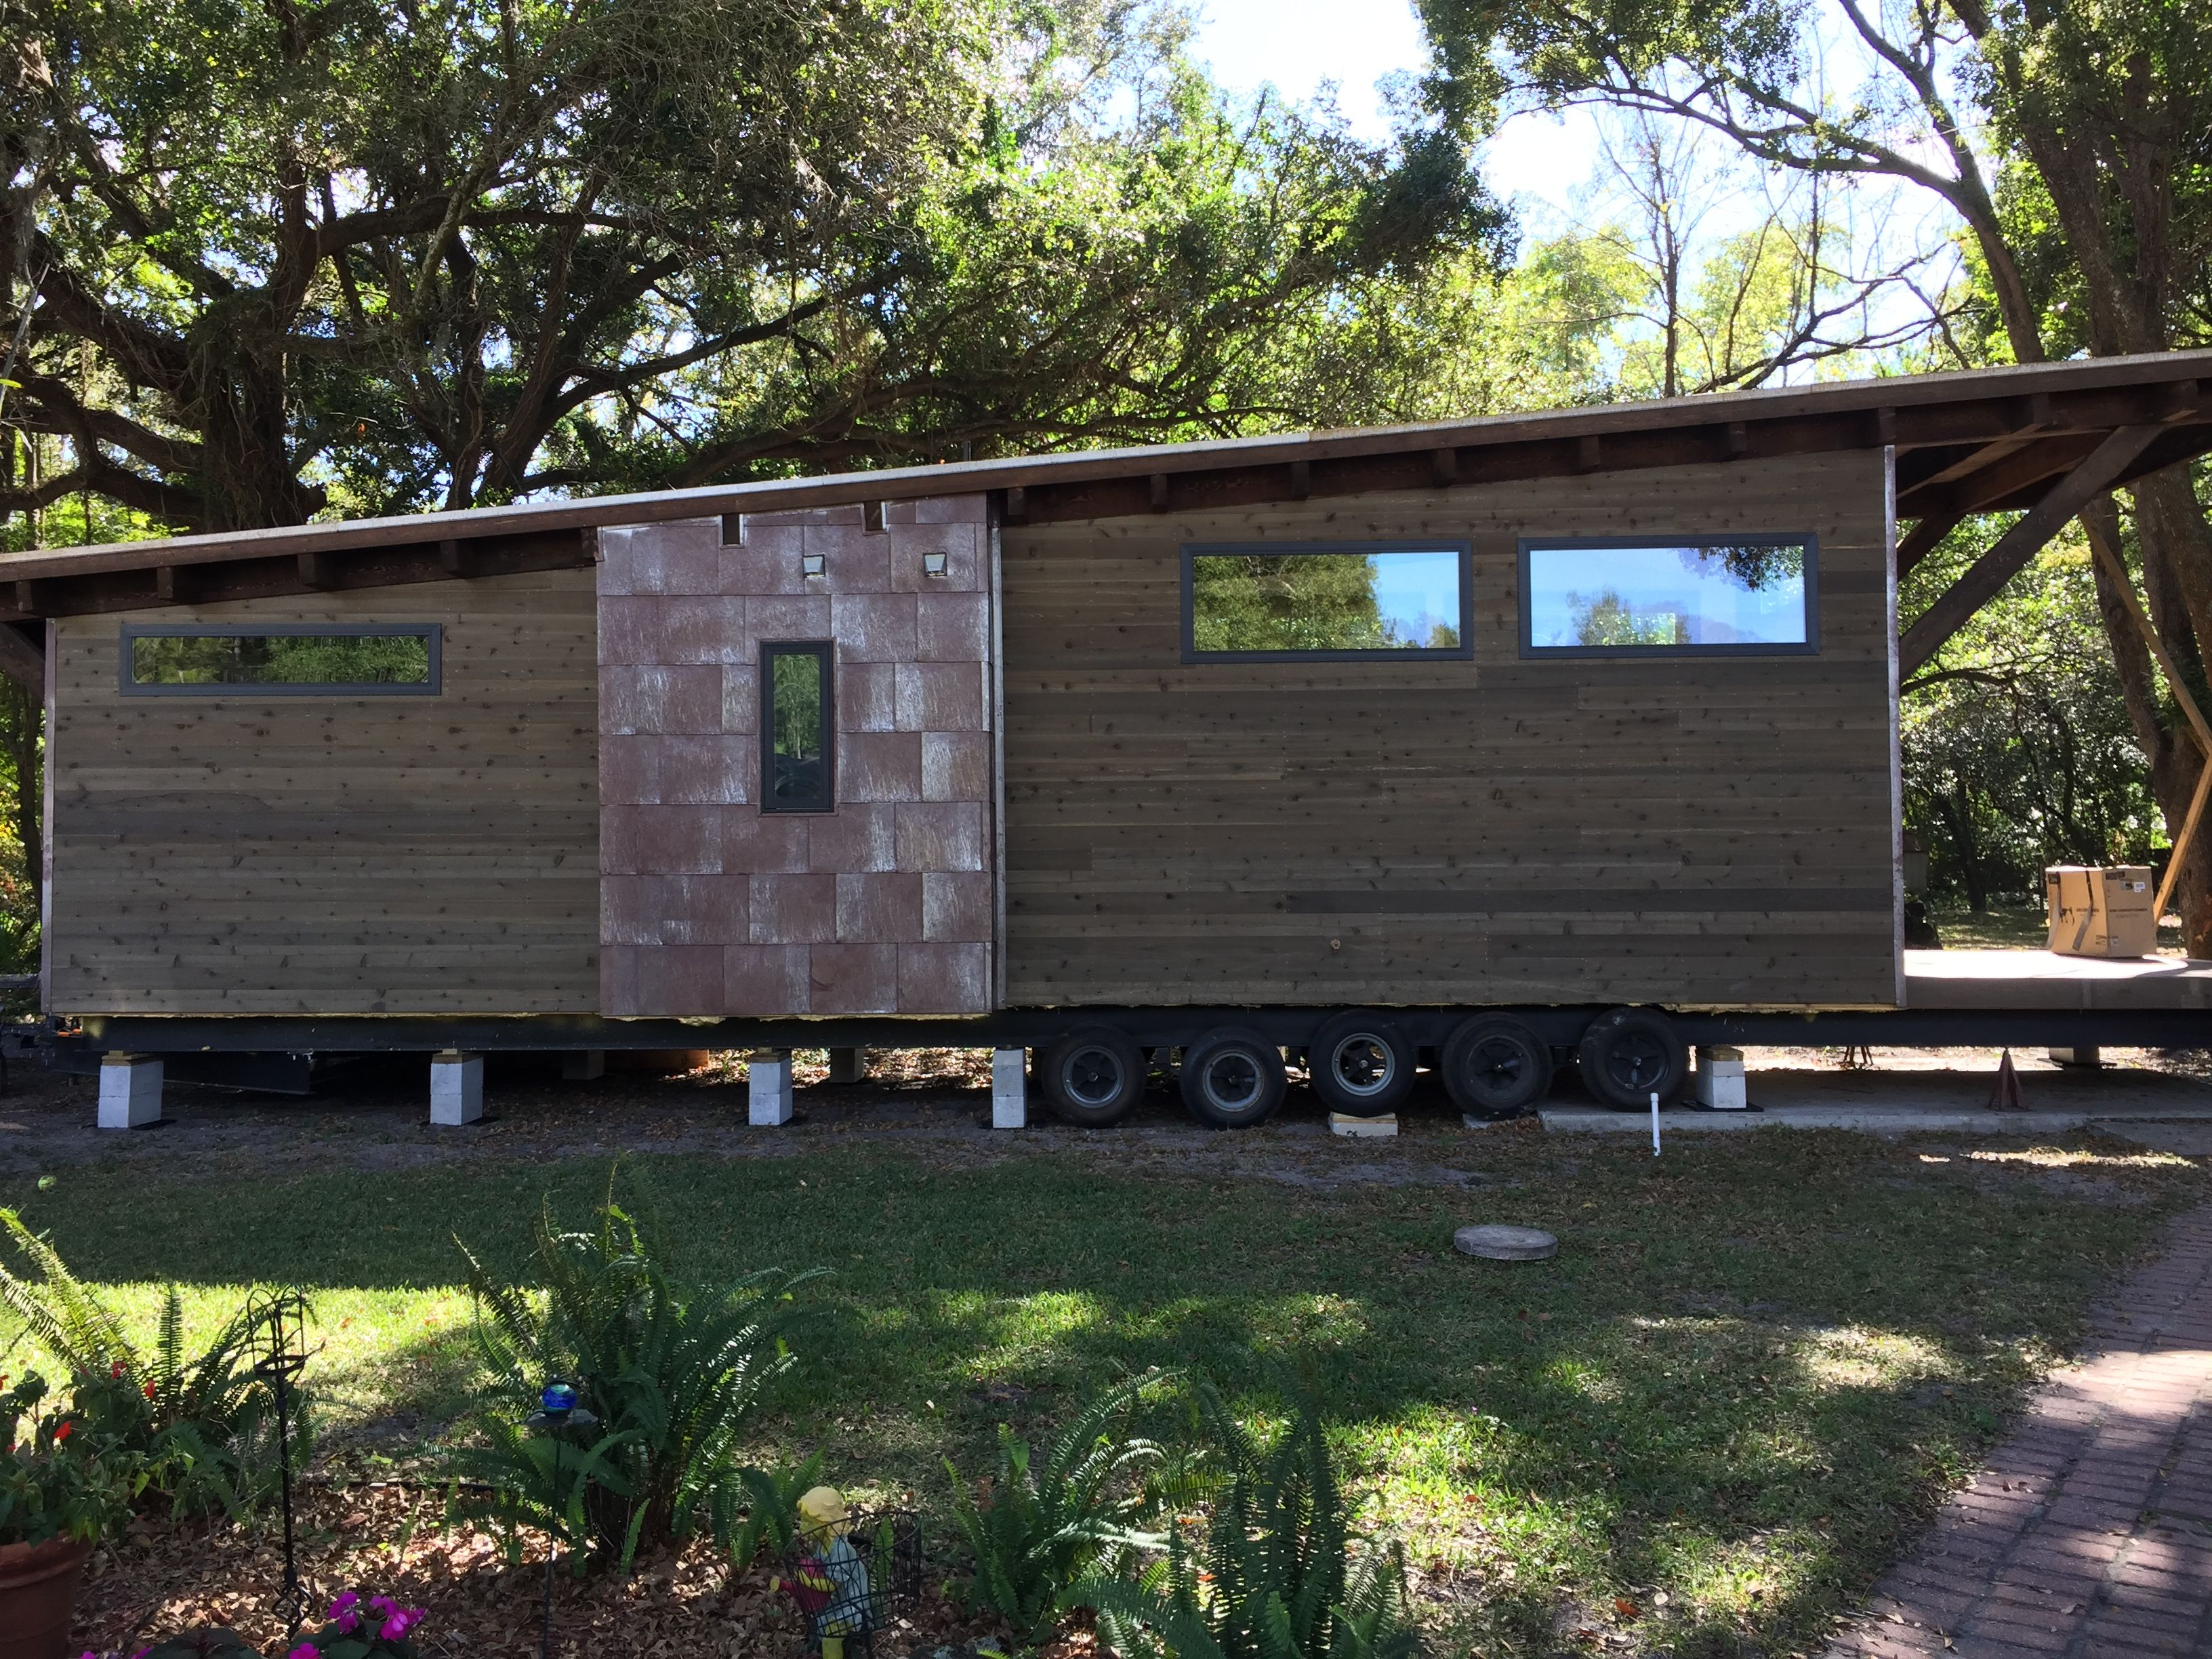 Hgtv Tiny House For Sale In Florida Tiny House Exterior Modern